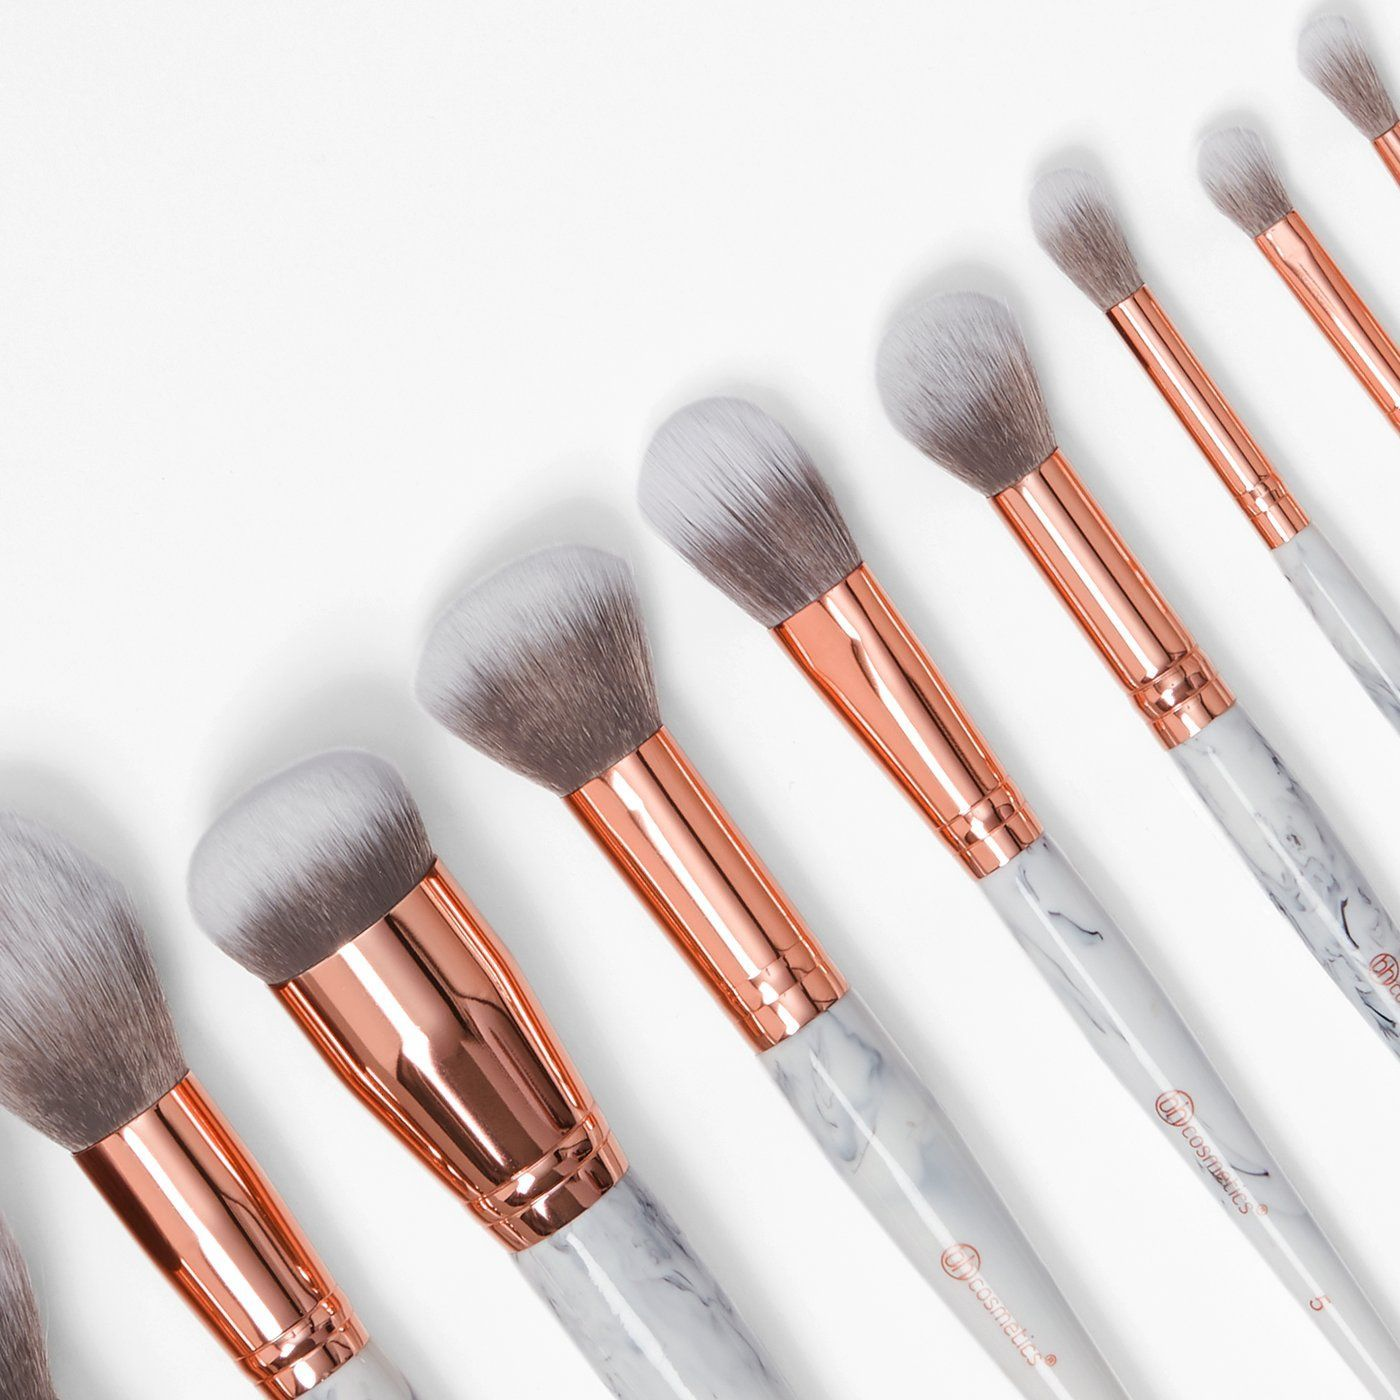 New Bh Cosmetics Marble Luxe 10 Piece Brush Set Bh Cosmetics Llc Skincaresecretsmakeup In 2020 How To Clean Makeup Brushes Makeup Brushes Clean Makeup